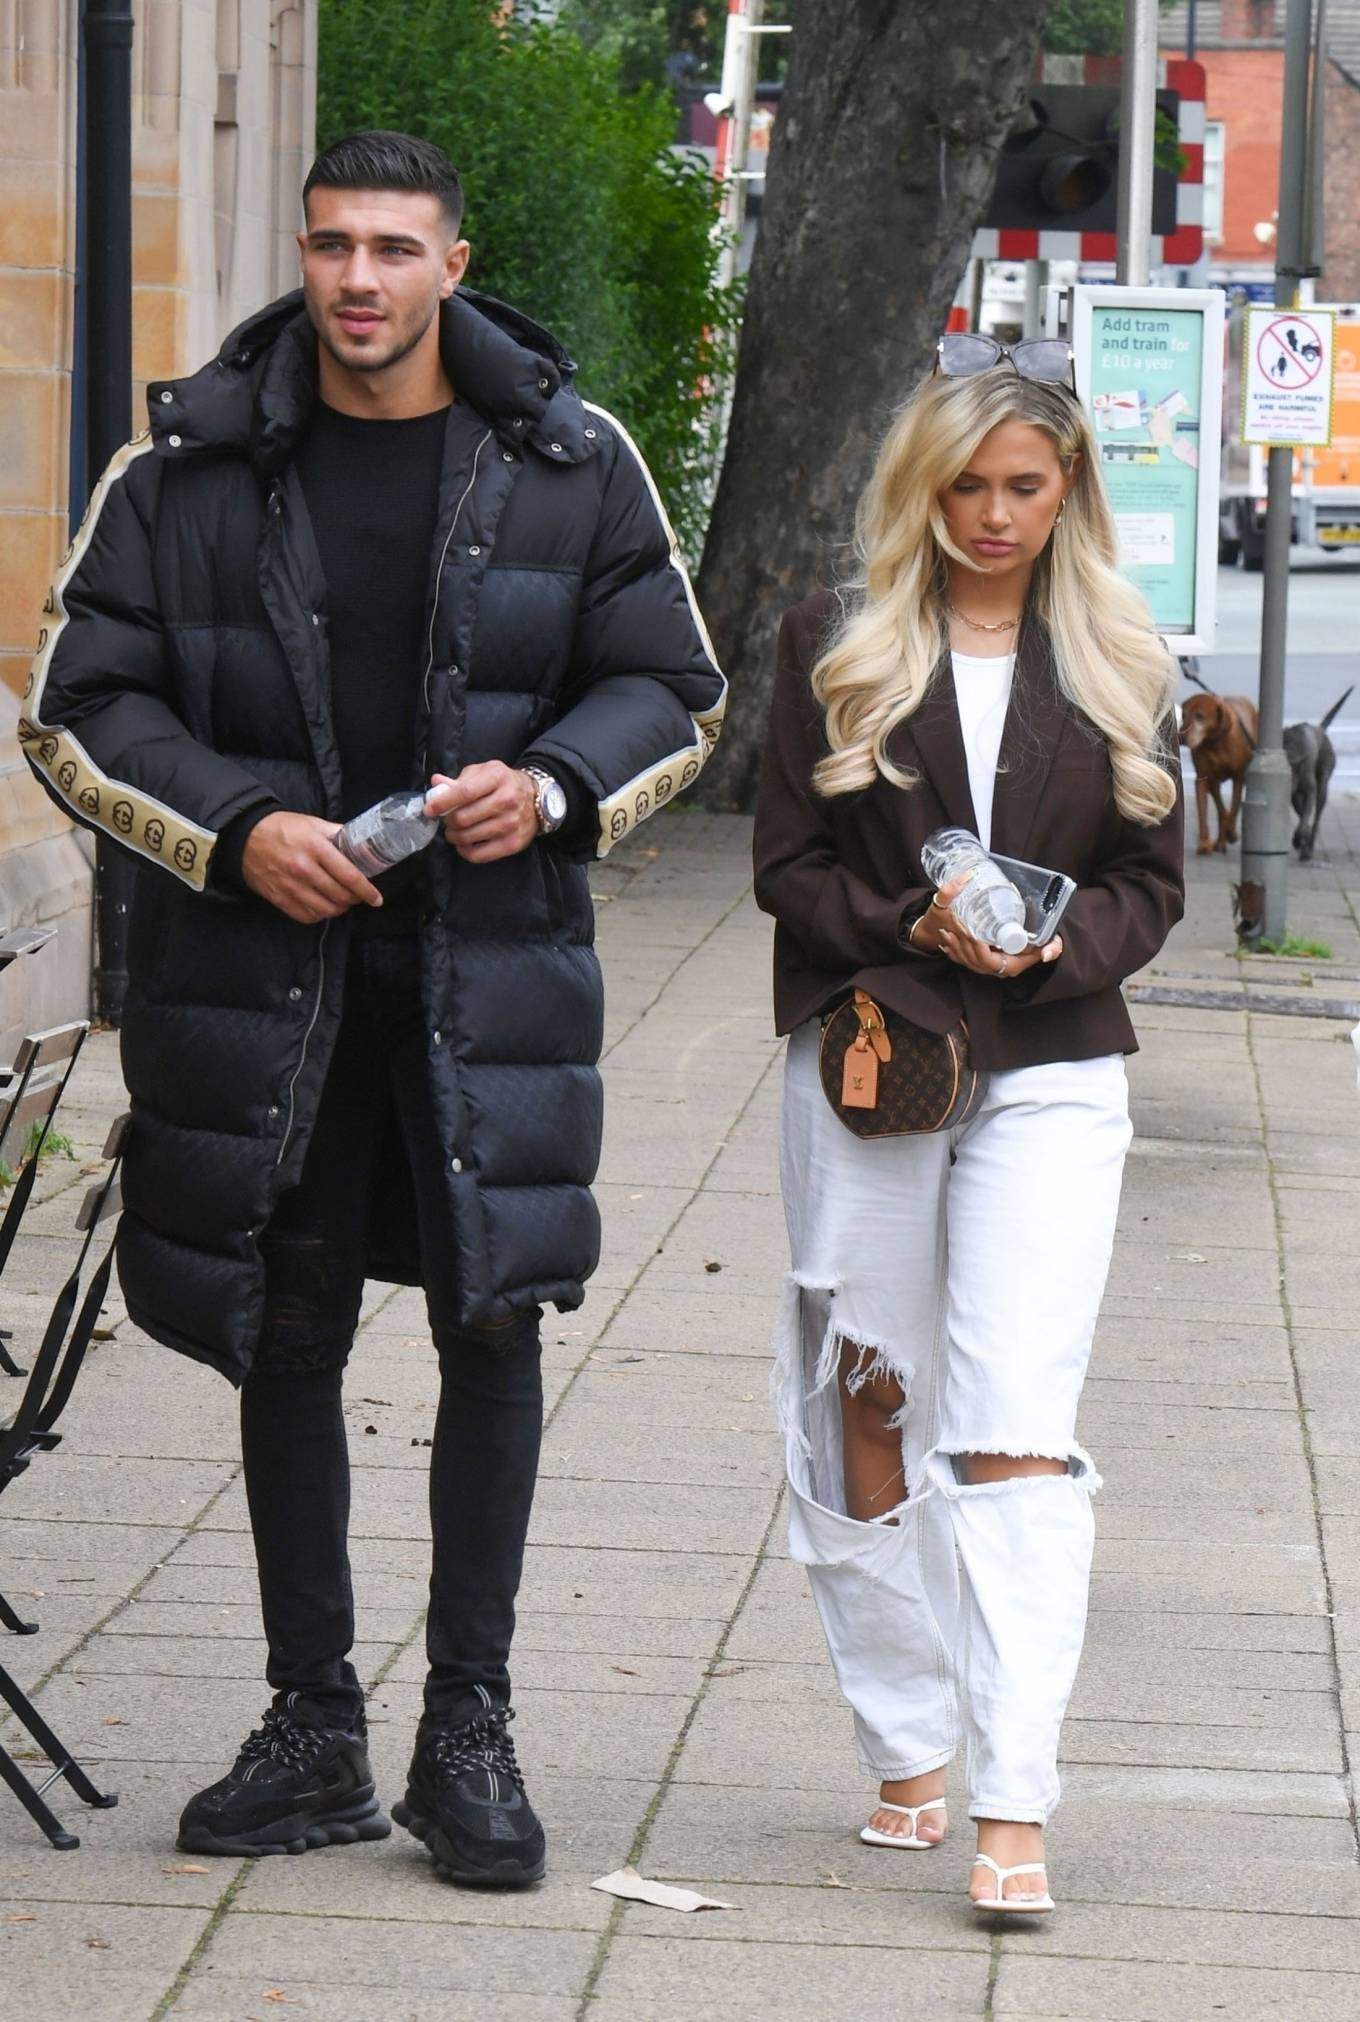 Molly-Mae Hague 2020 : Molly-Mae Hague and Tommy Fury – Seen while out in Cheshire -16